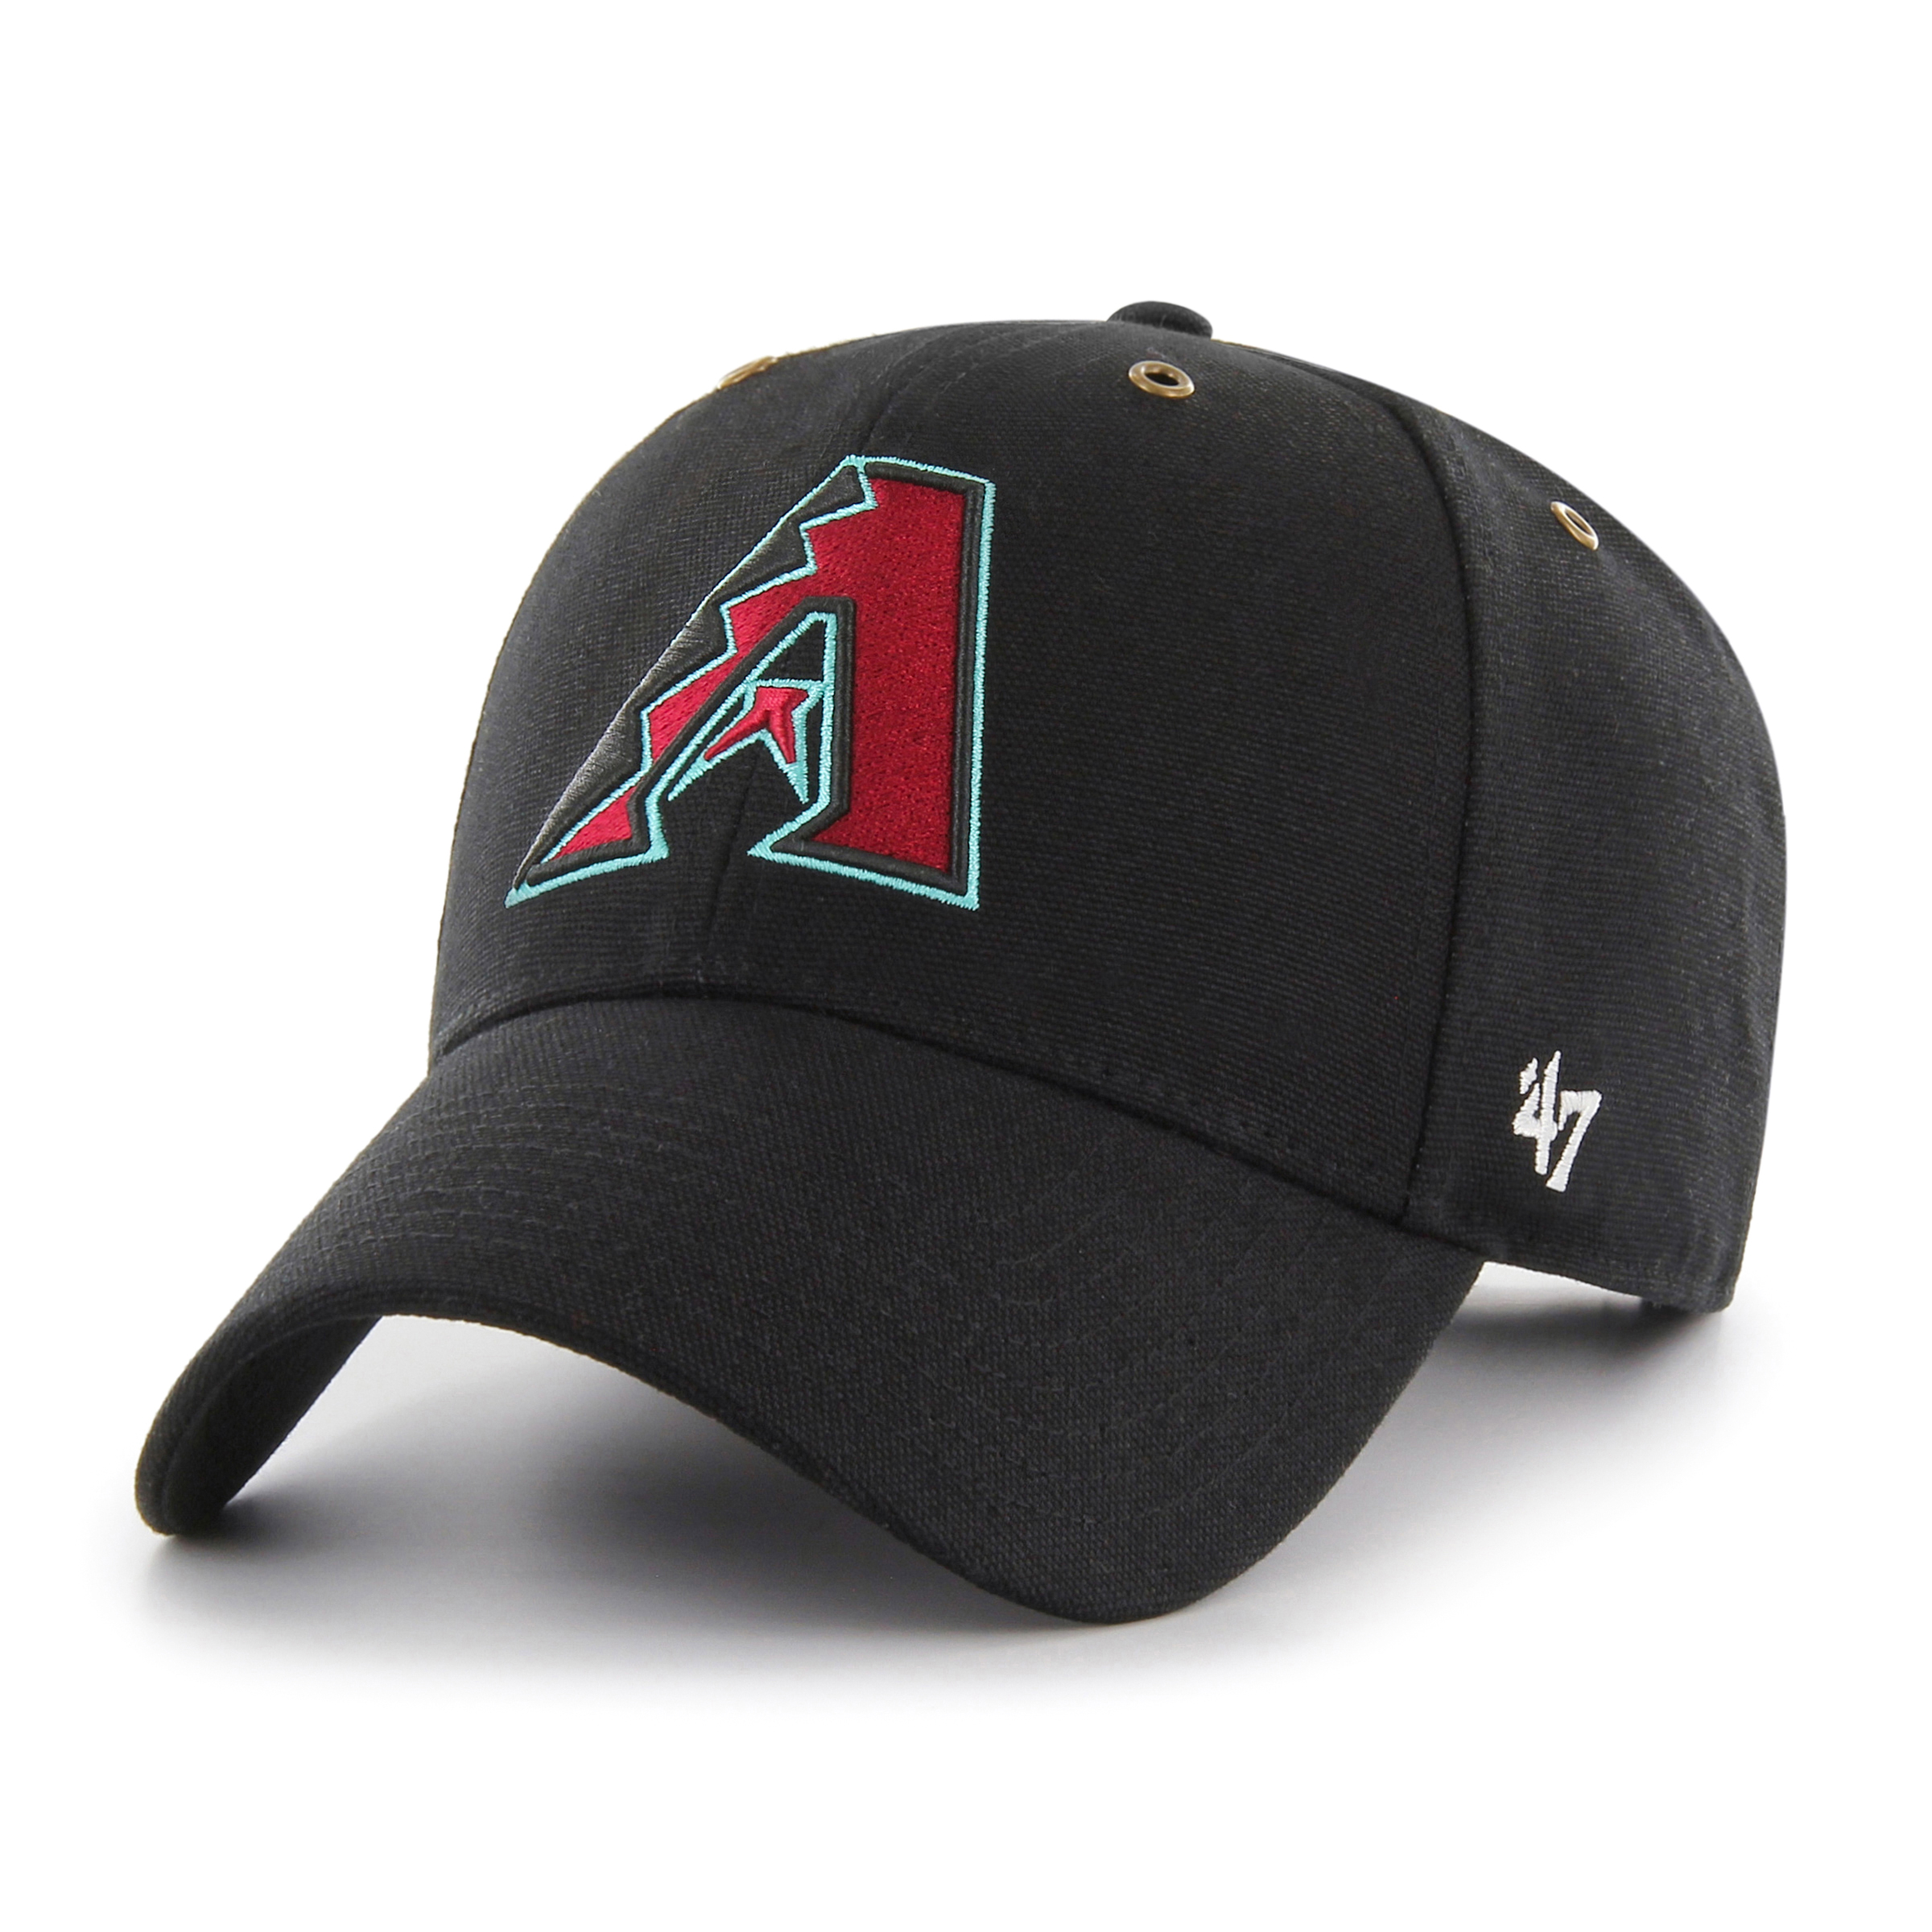 2fd89bdfe2425 So gear up this MLB season with a hat from Carhartt x  47 s OUTWORK x  OUTROOT collaboration at a Lids store near you. Diamondbacks Diamondbacks  ...